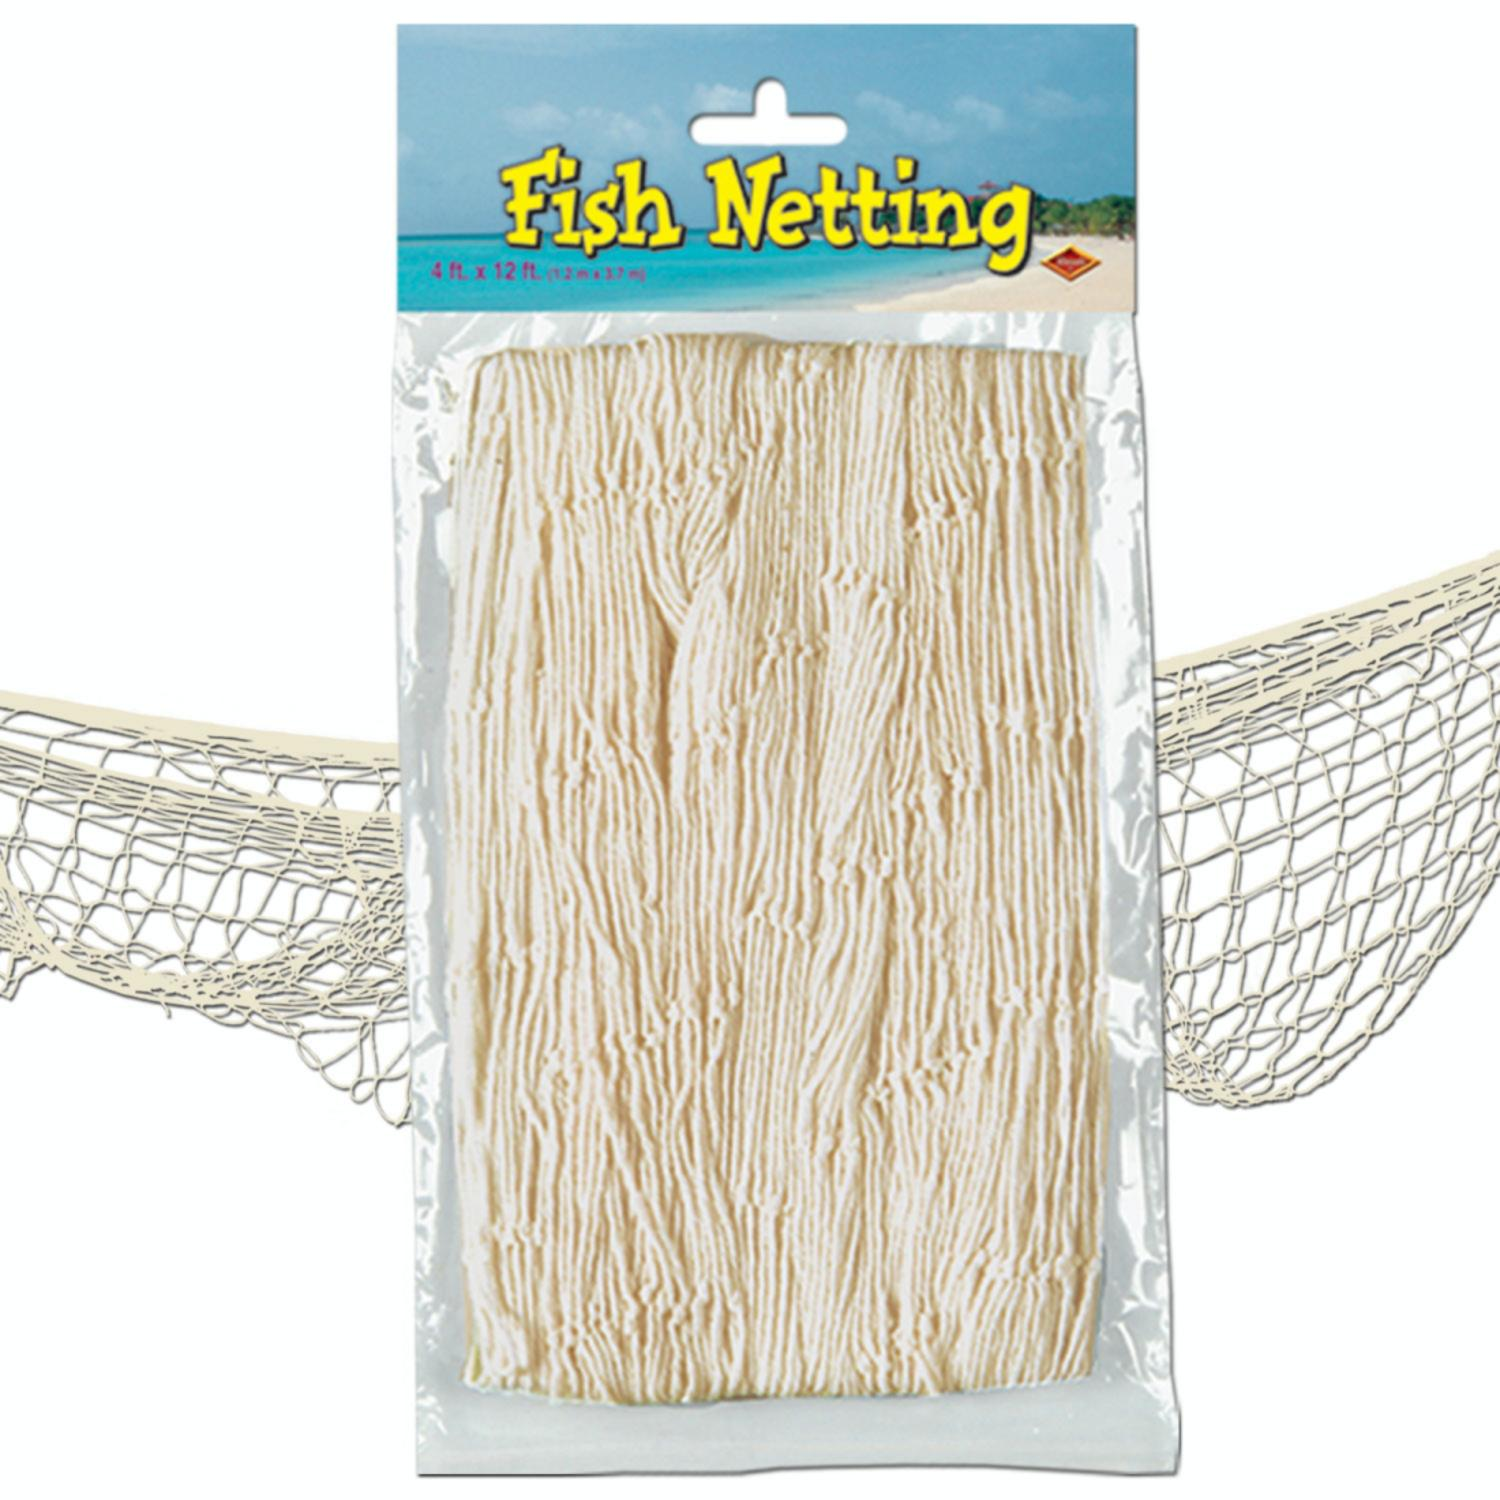 Pack of 12 Under the Sea Tropical Natural White Fish Netting Hanging Party Decor 12'